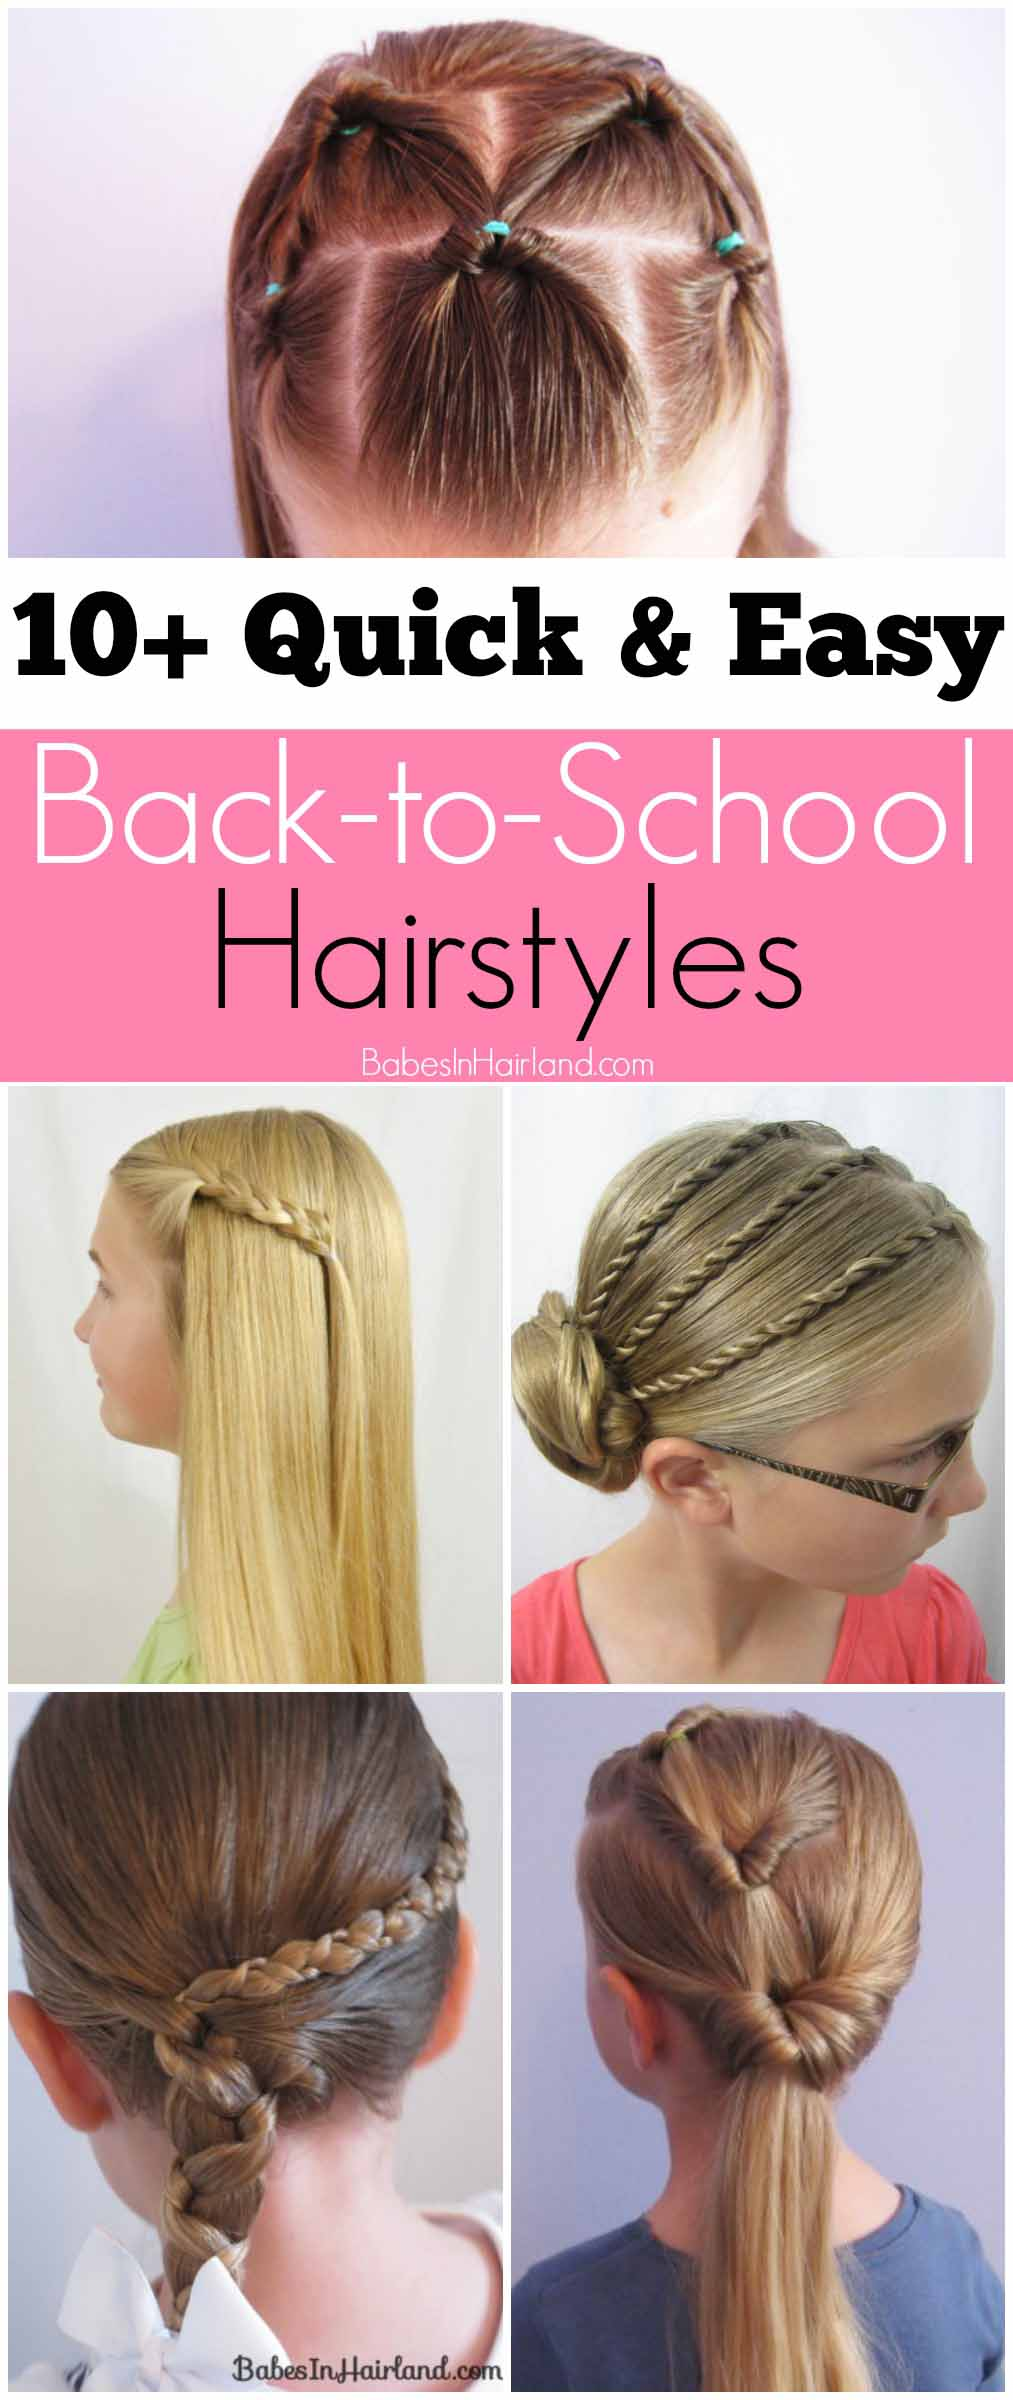 Phenomenal 10 Quick And Easy Back To School Hairstyles Babes In Hairland Short Hairstyles Gunalazisus